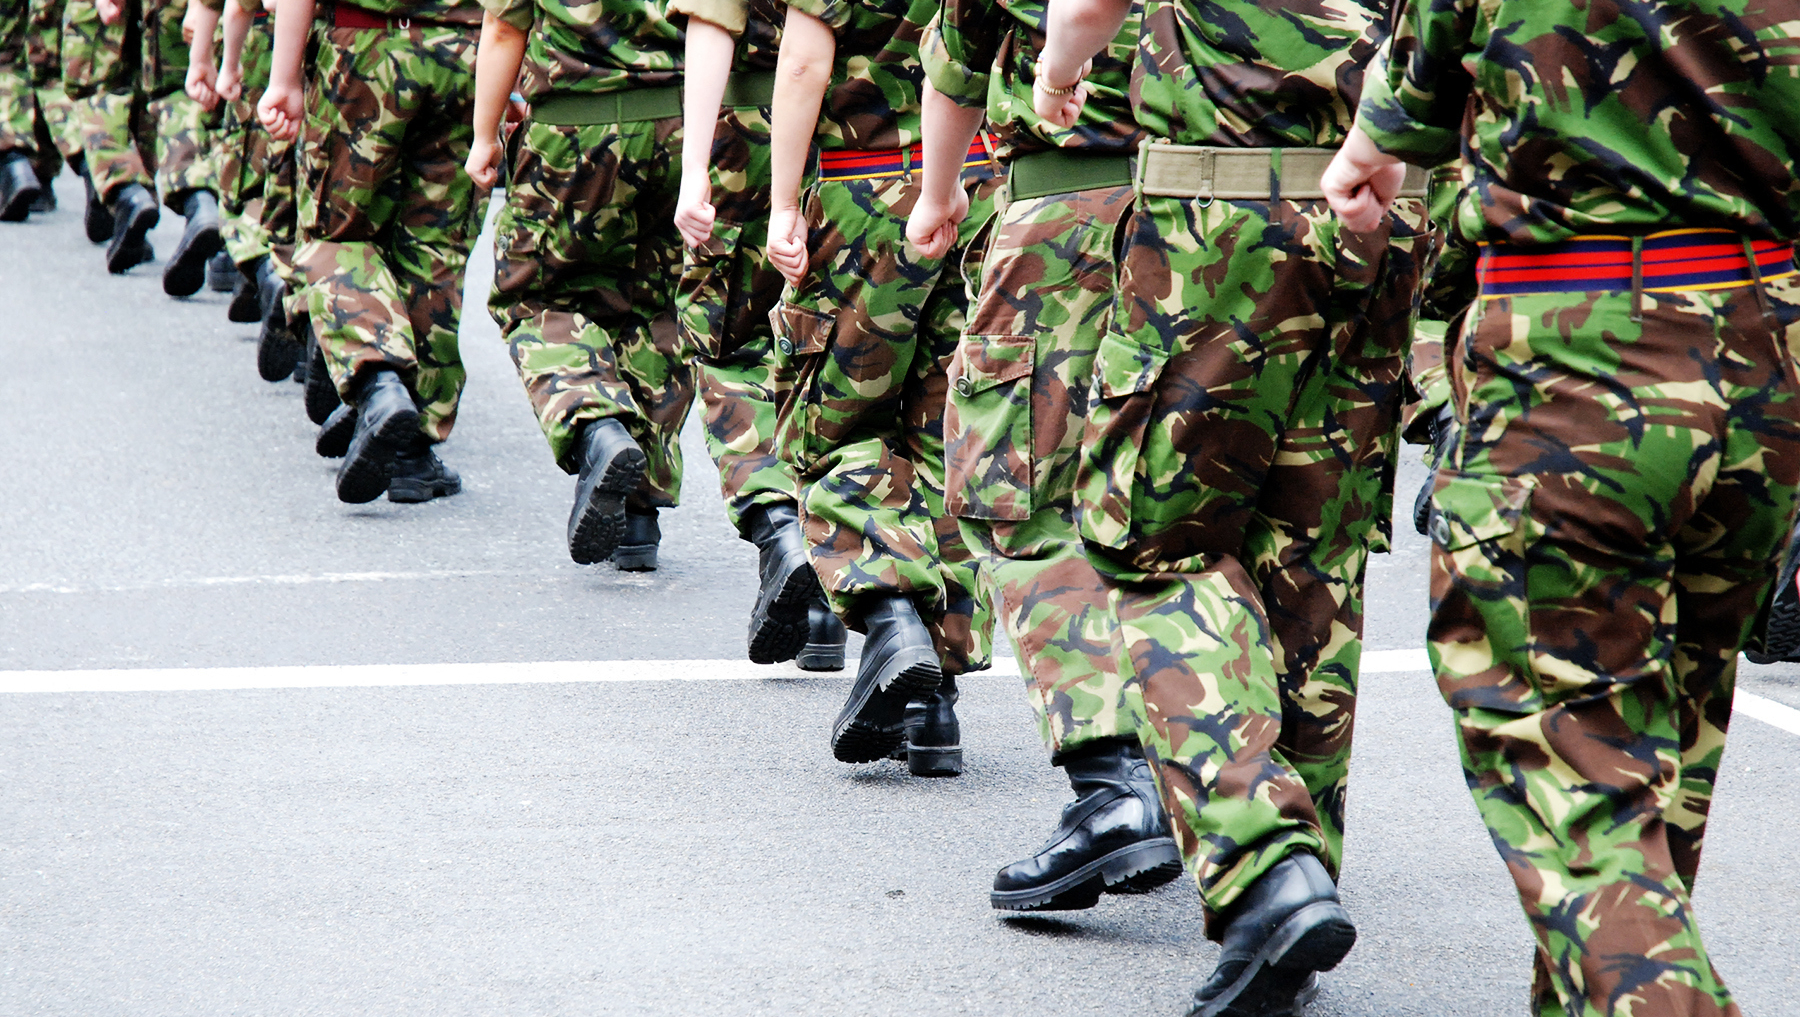 Soldiers marching in line